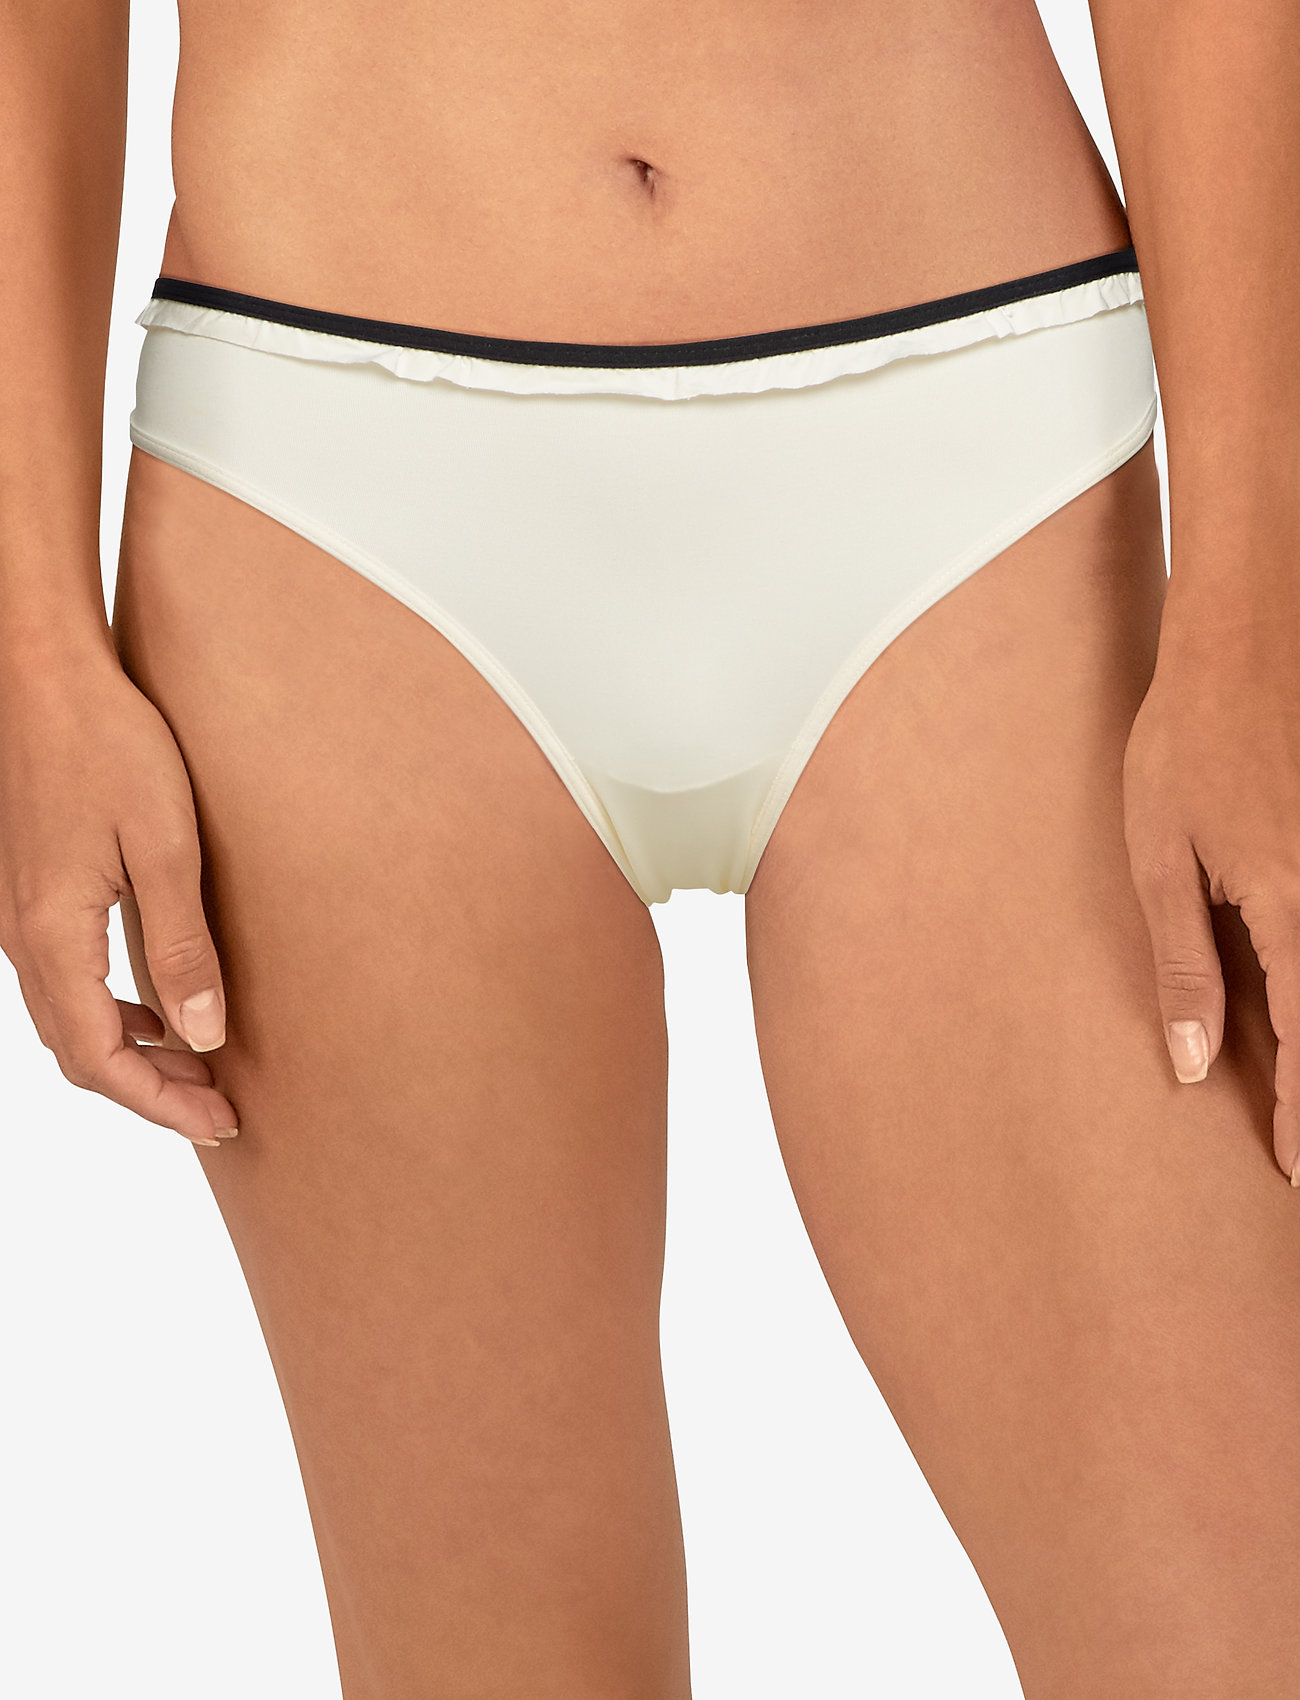 Marlies Dekkers MD SPACE ODESSEY BRIEF 5 IVORY-BLACK - IVORY/BLACK